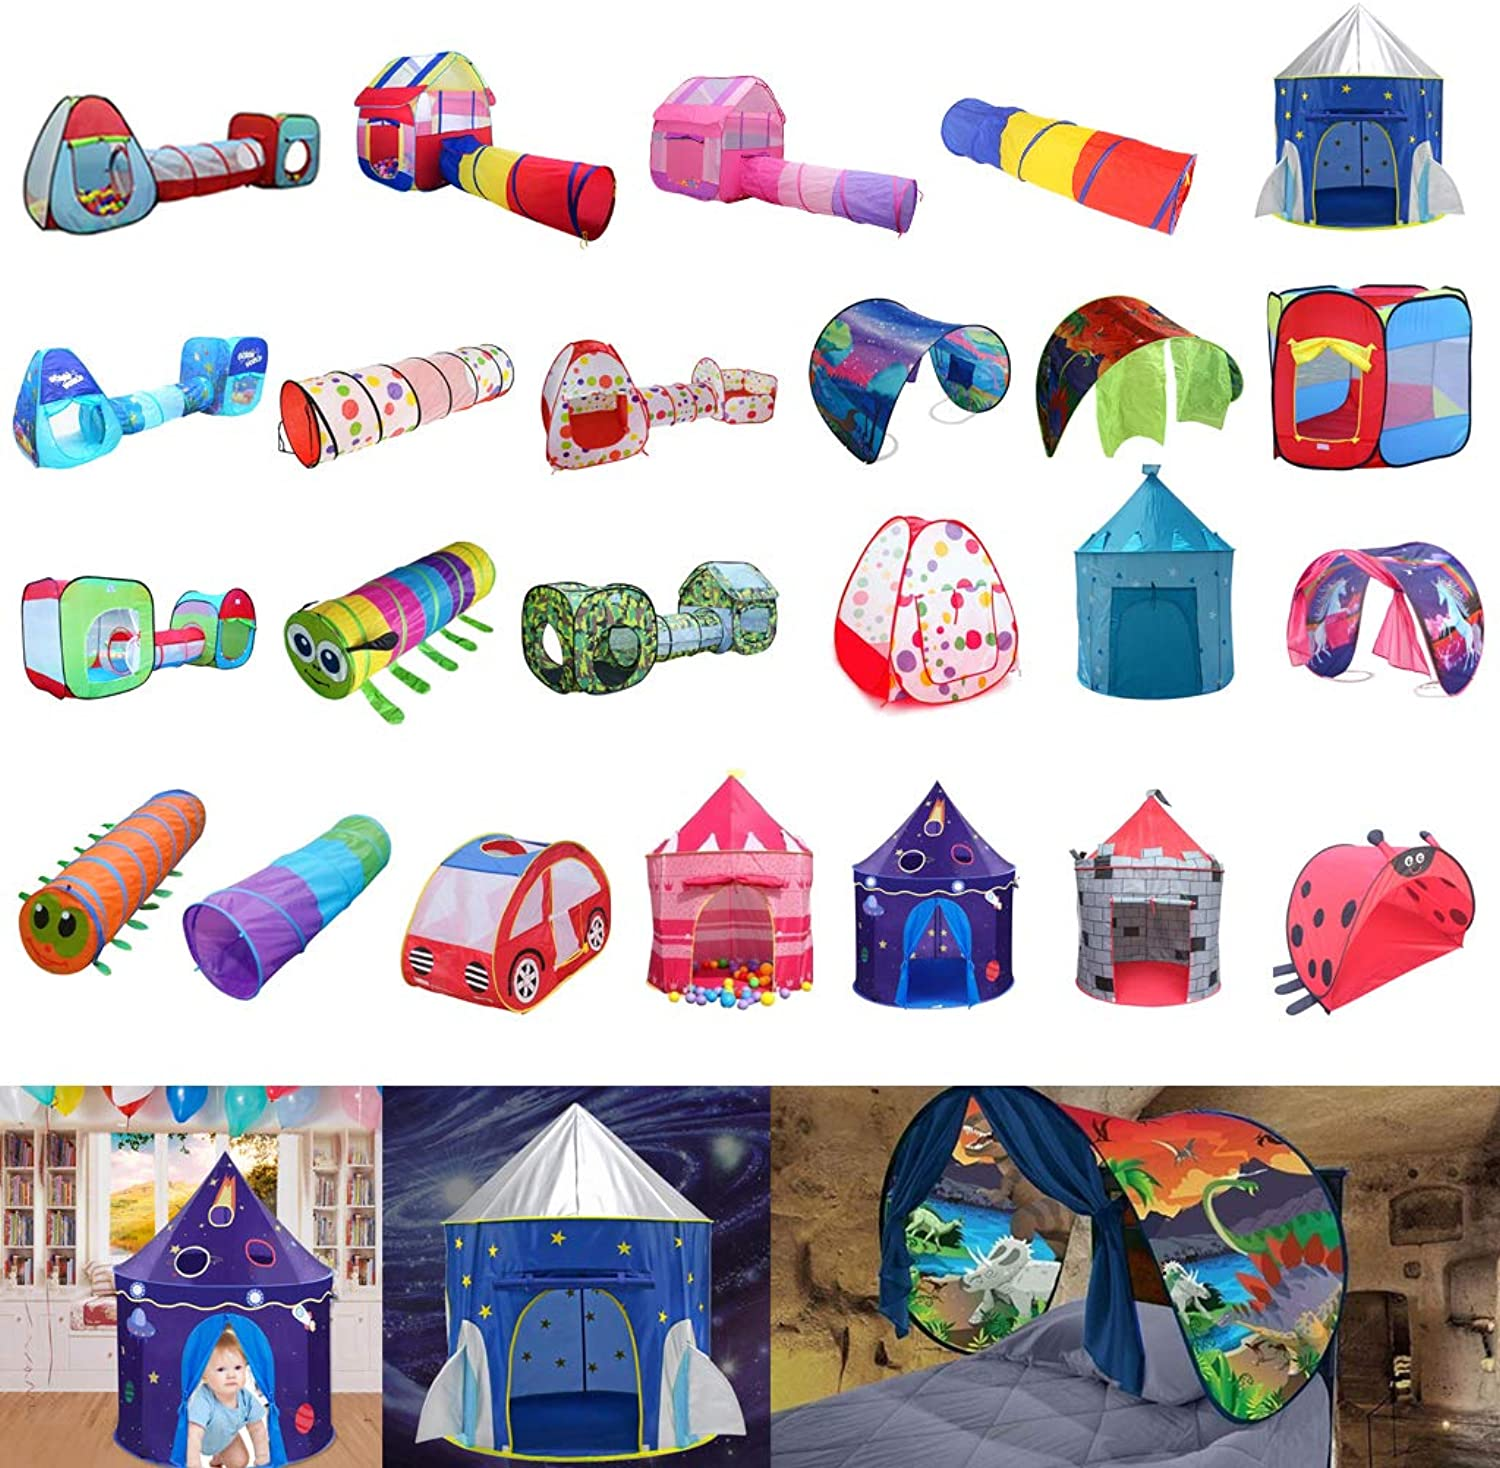 Baosity Rocket Ship Play Tent for Boys - Astronaut Space Playhouse - Kids Pop Up Tent Toy for Indoor Outdoor Fun Play